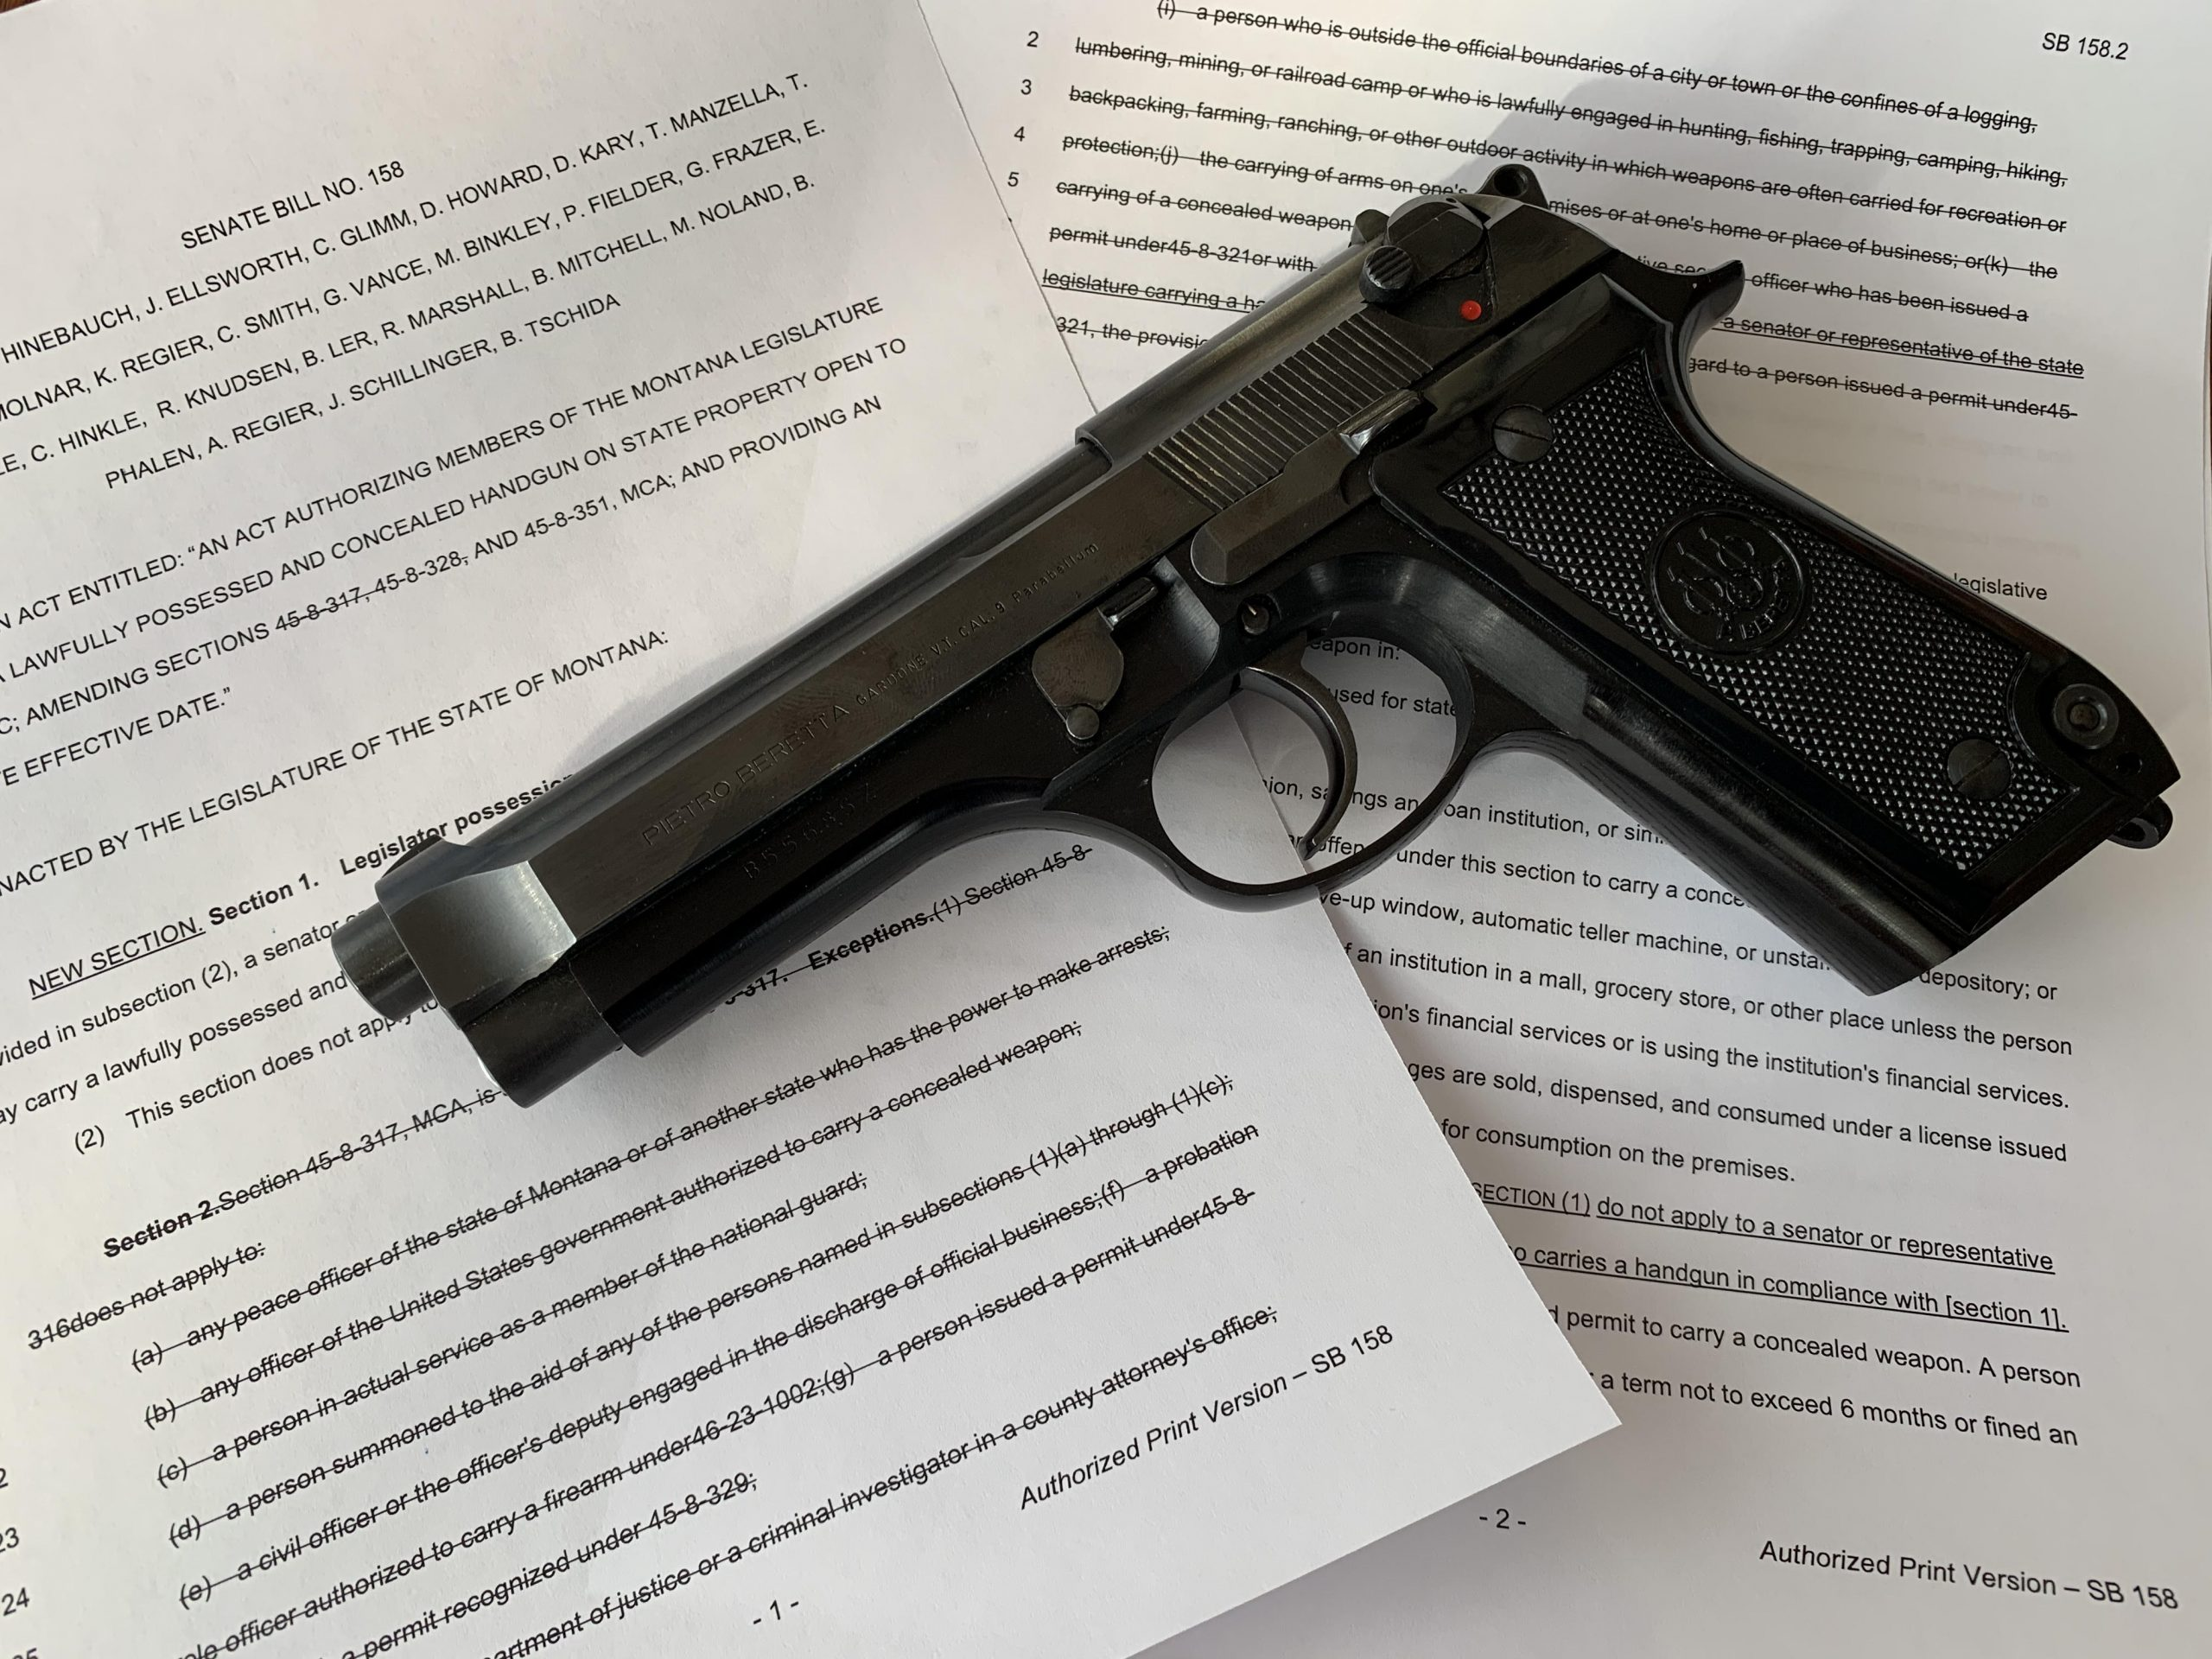 Guns on campus policy drafted, public comment session scheduled Wednesday